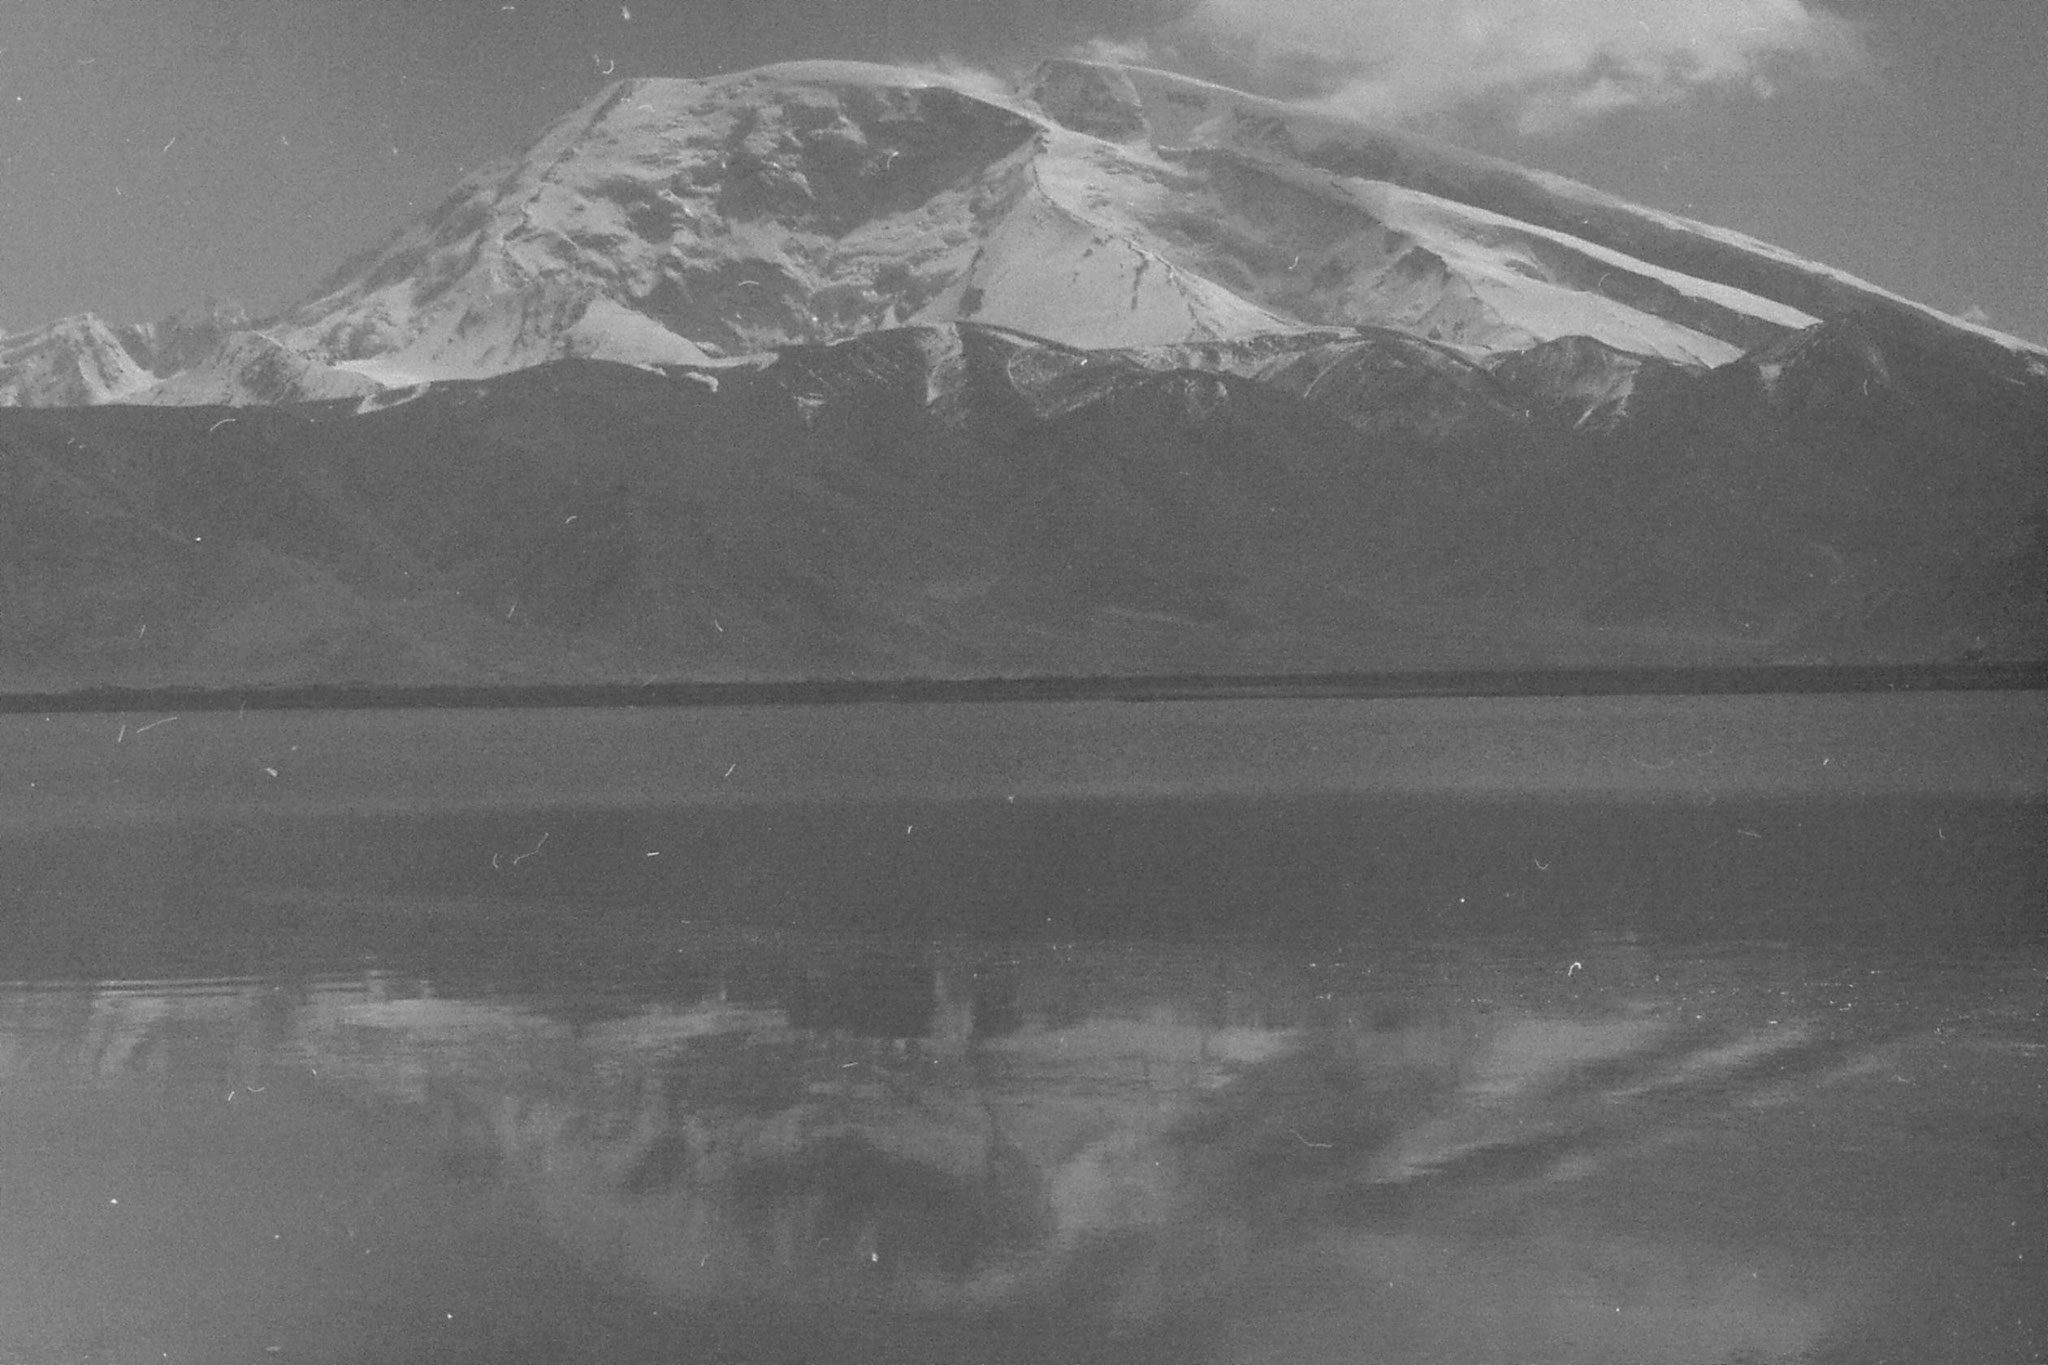 10/9/1989: 4: Lake Karakul